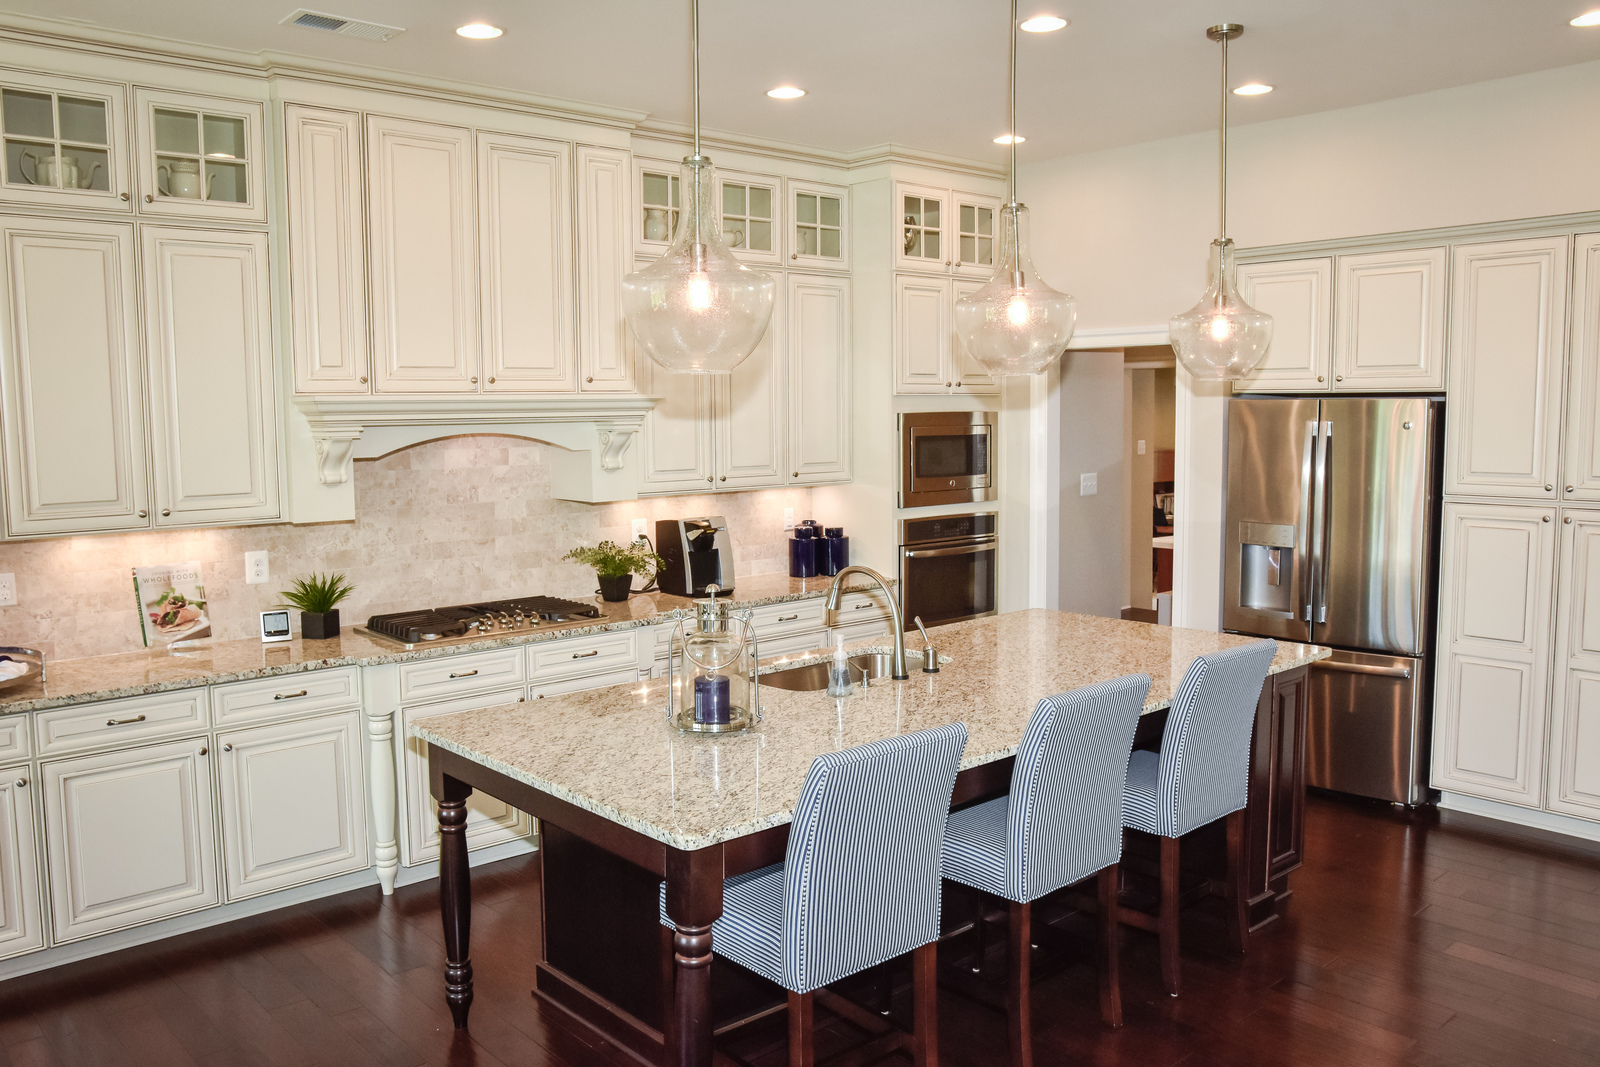 From the countertops to the cabinetry, let us help create the perfect recipe for your dream kitchen